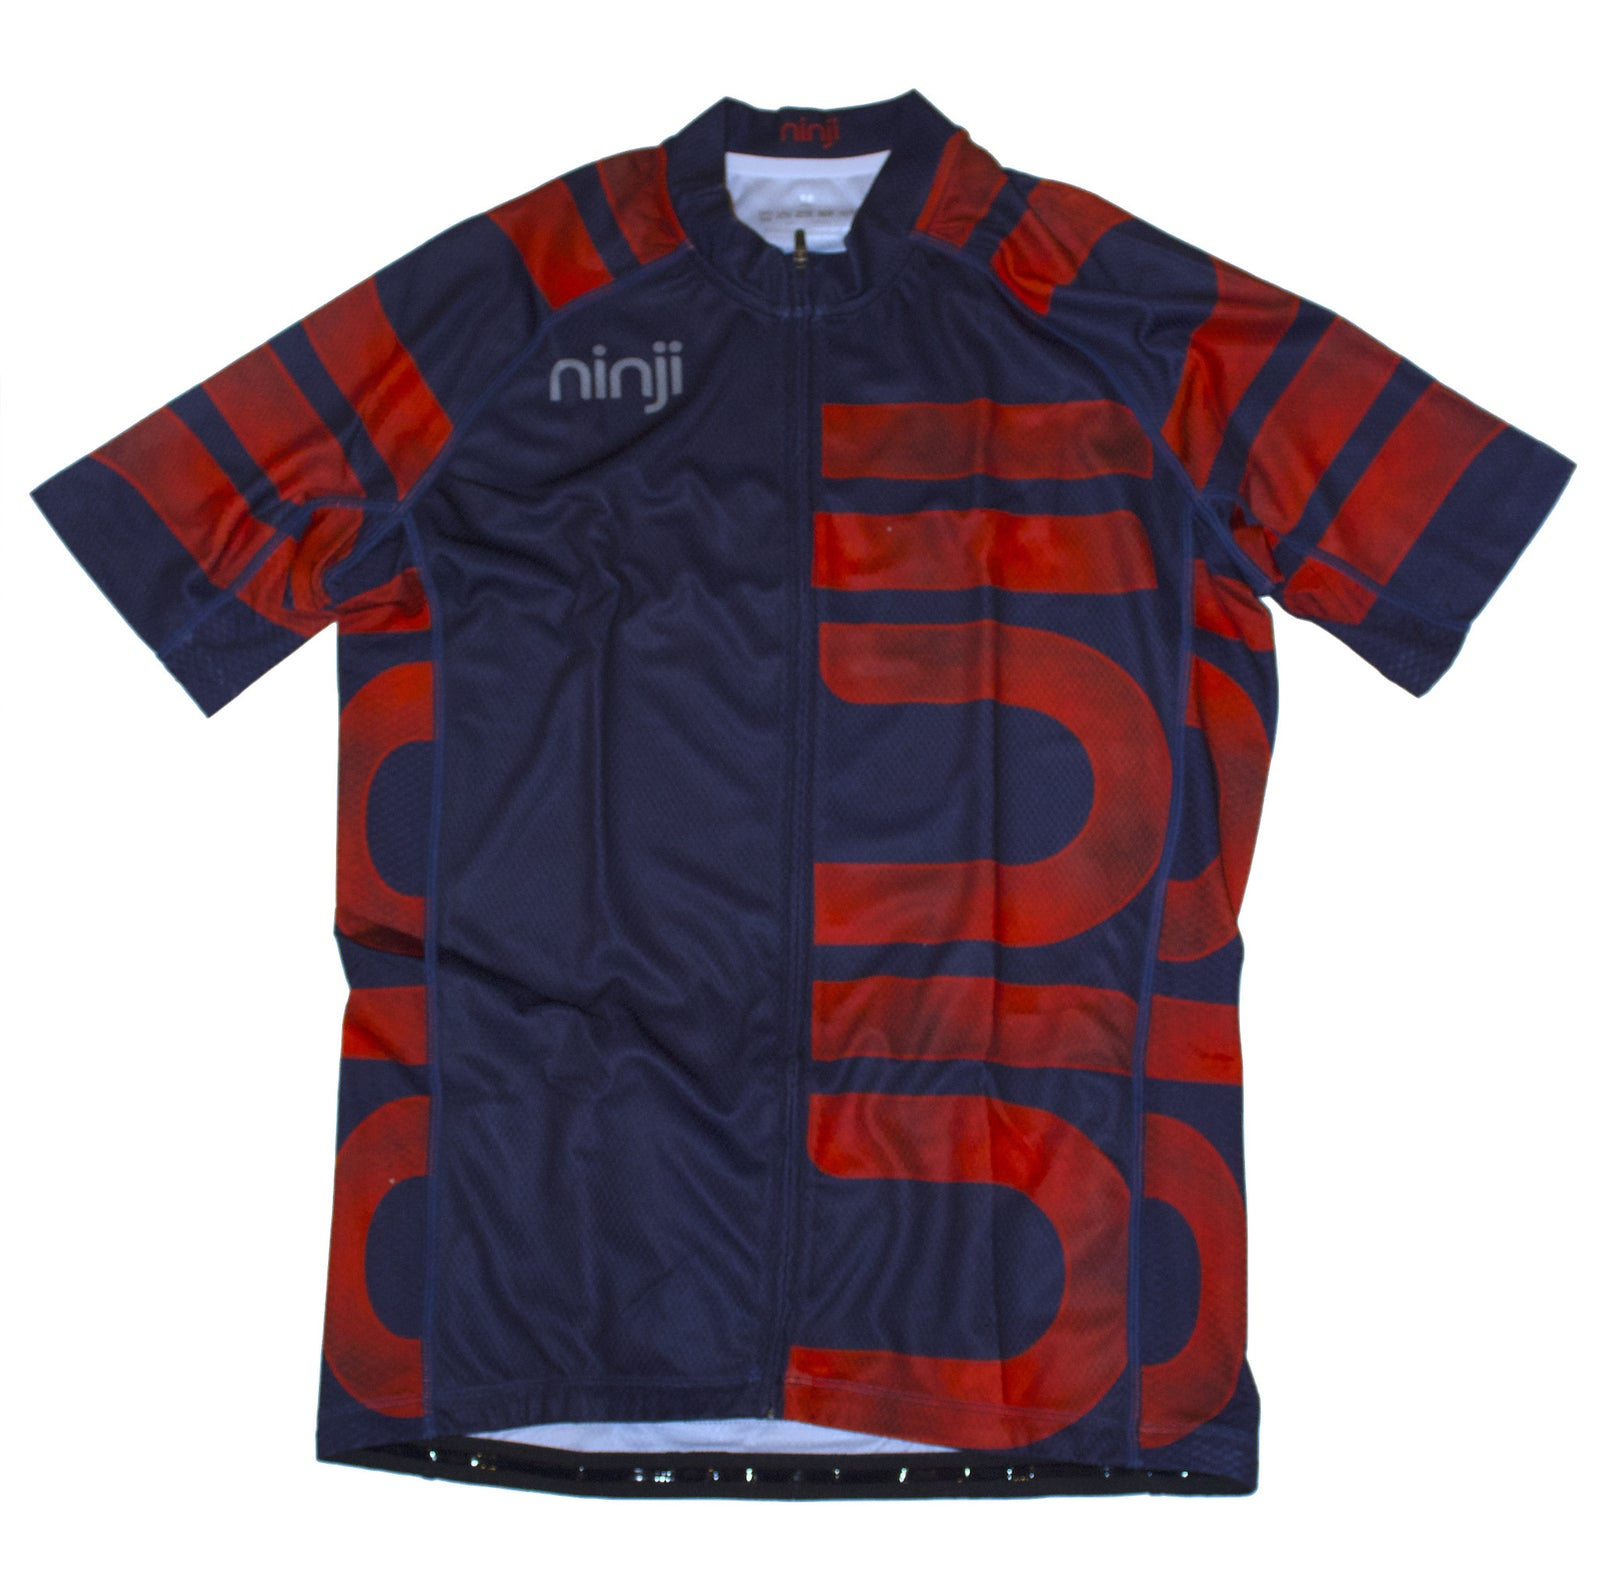 MENS SS JERSEY - NAVY ORANGE LOGO